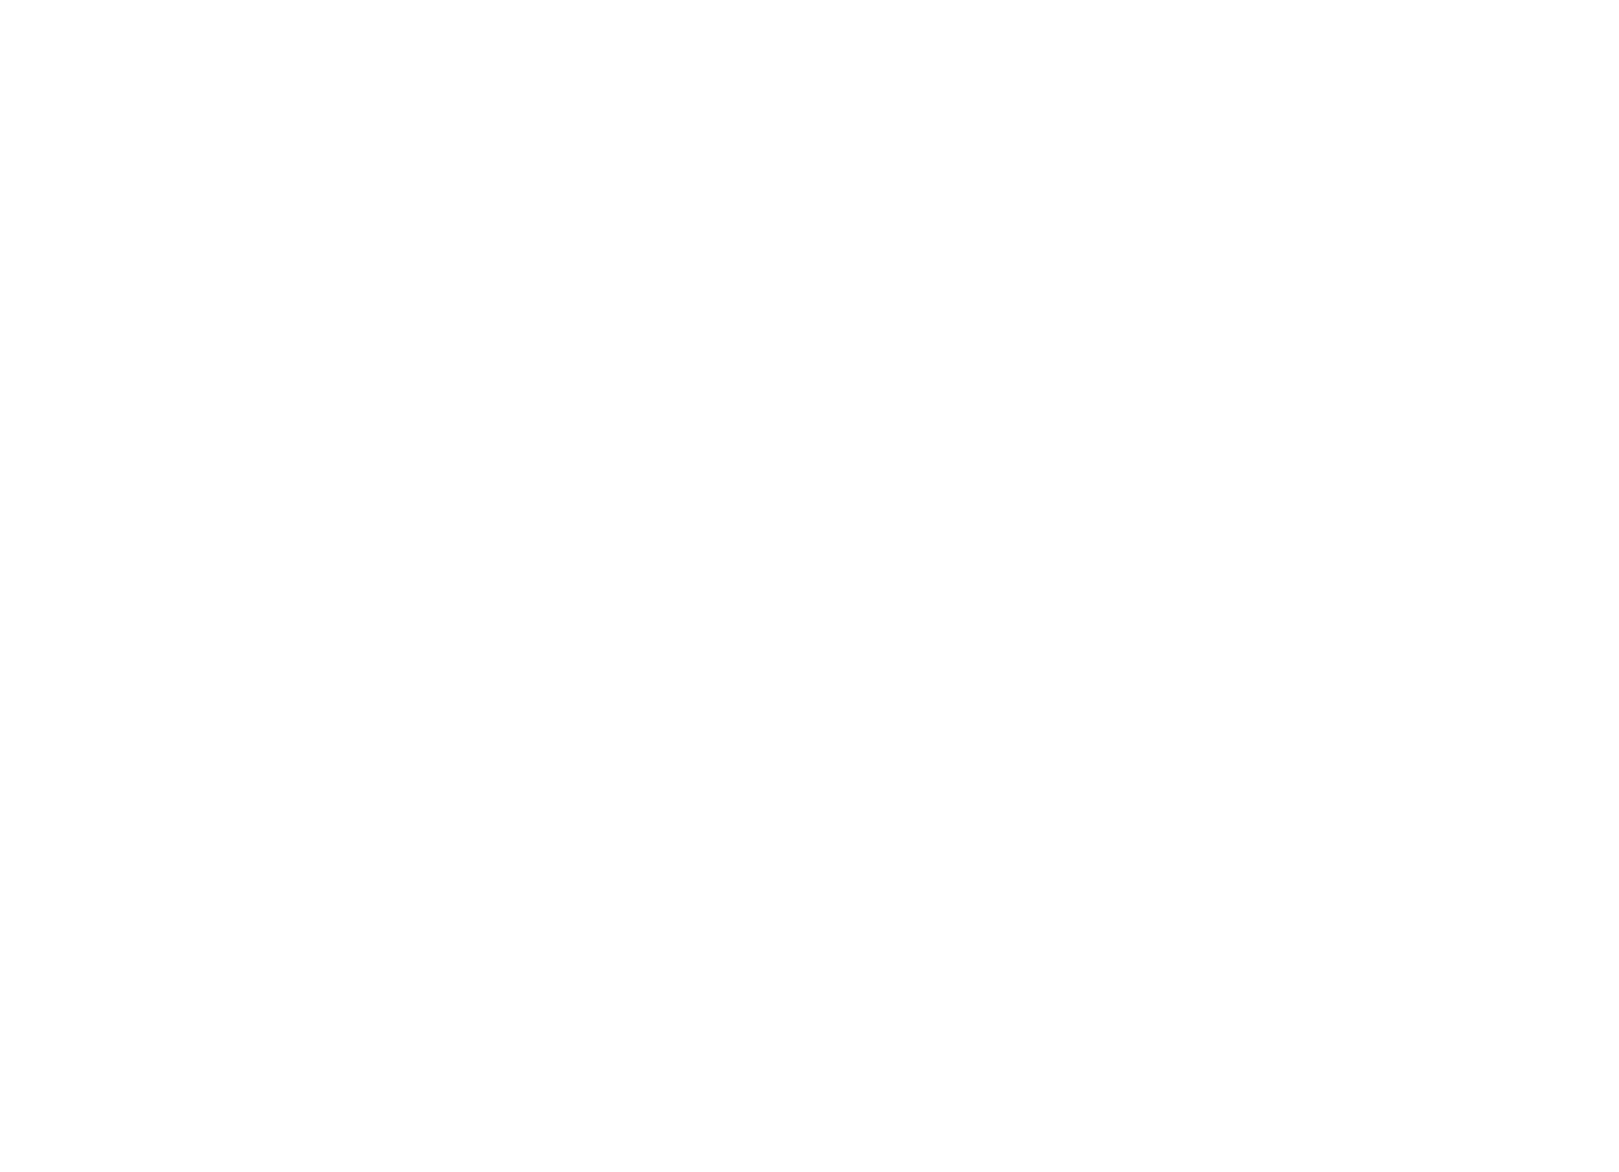 The crazy Channel